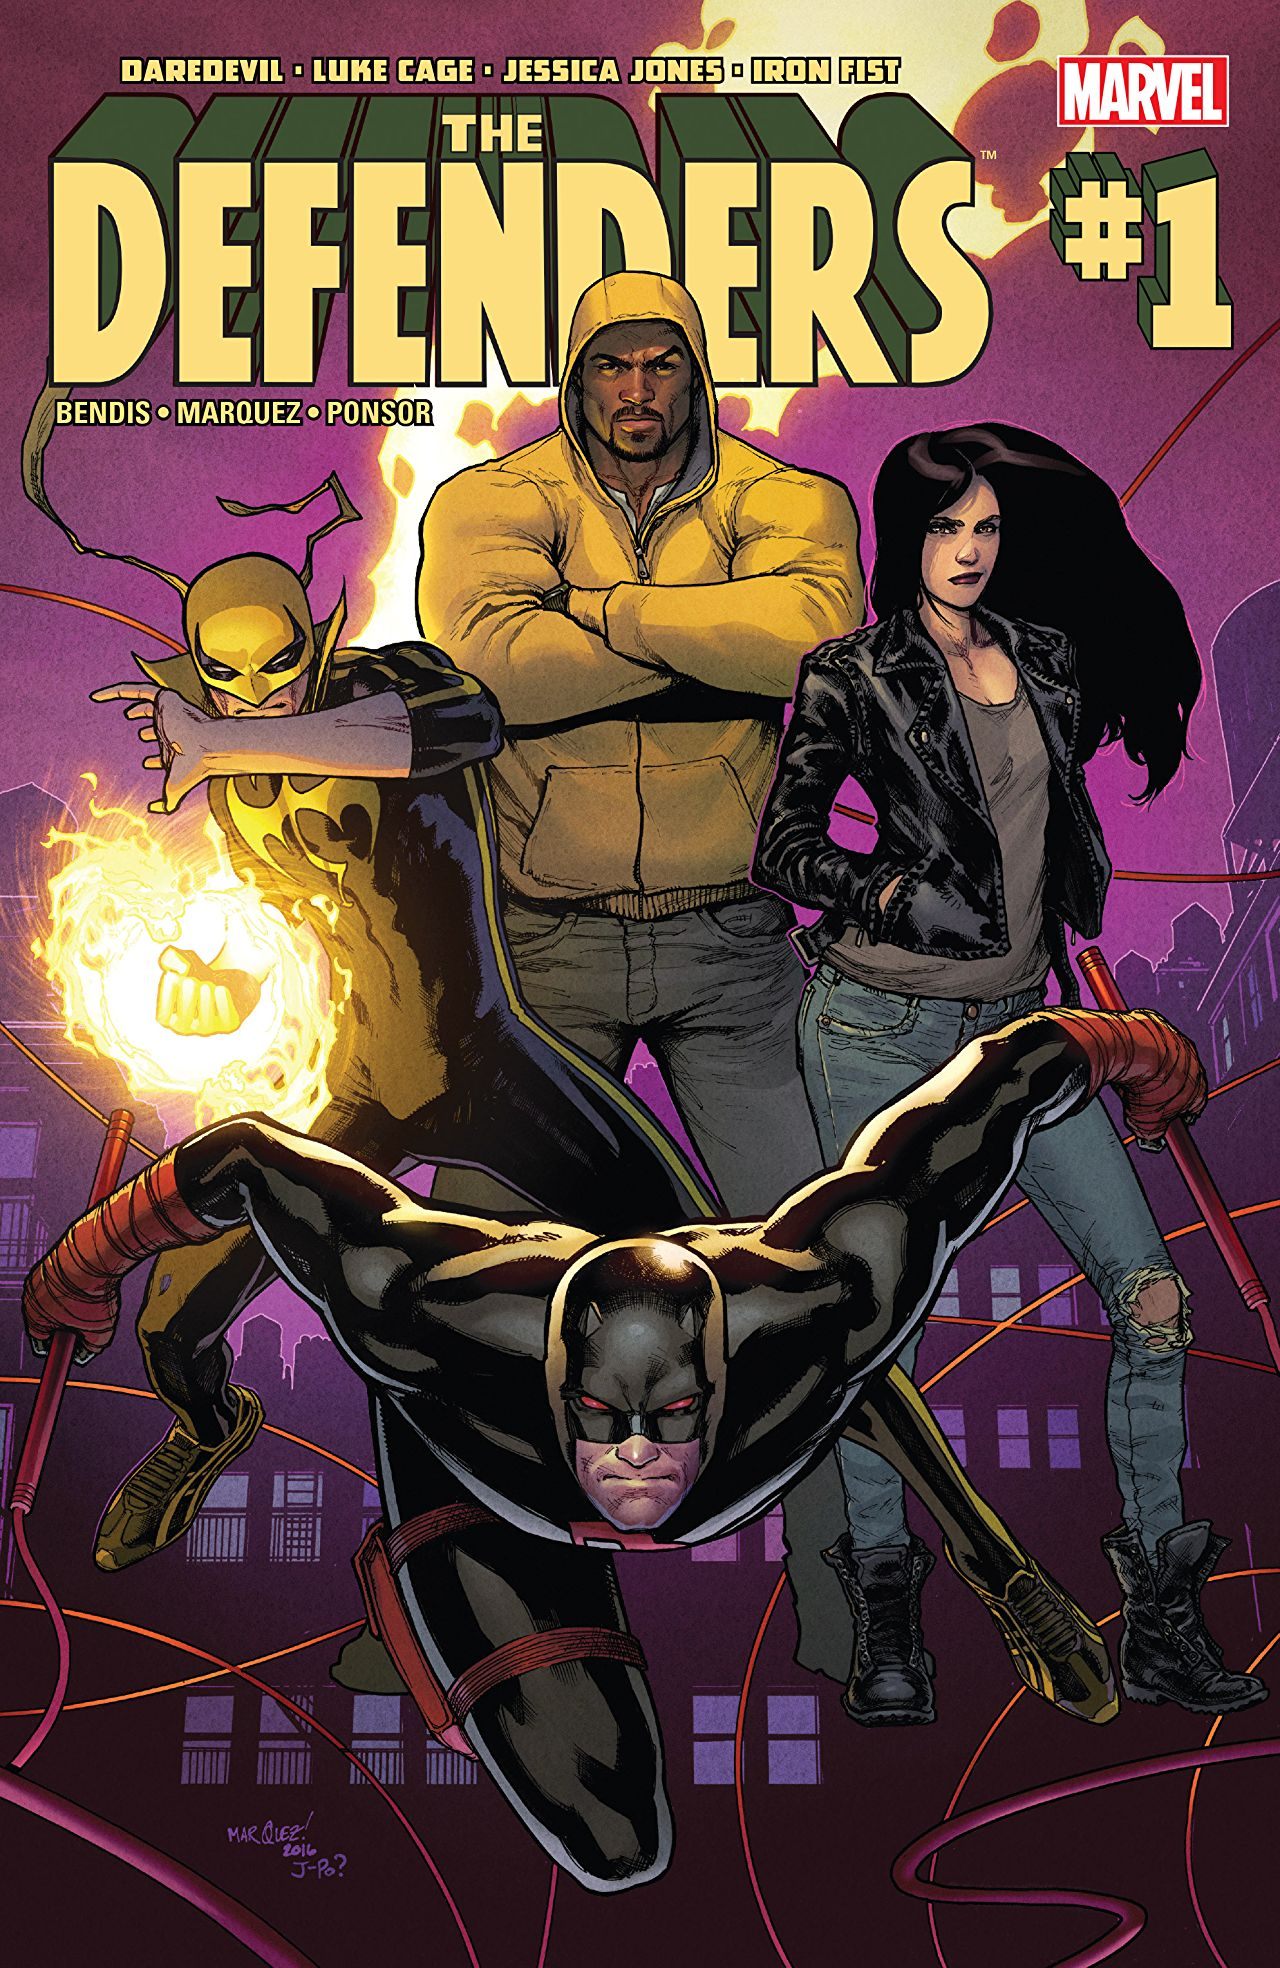 The Defenders #1 Review